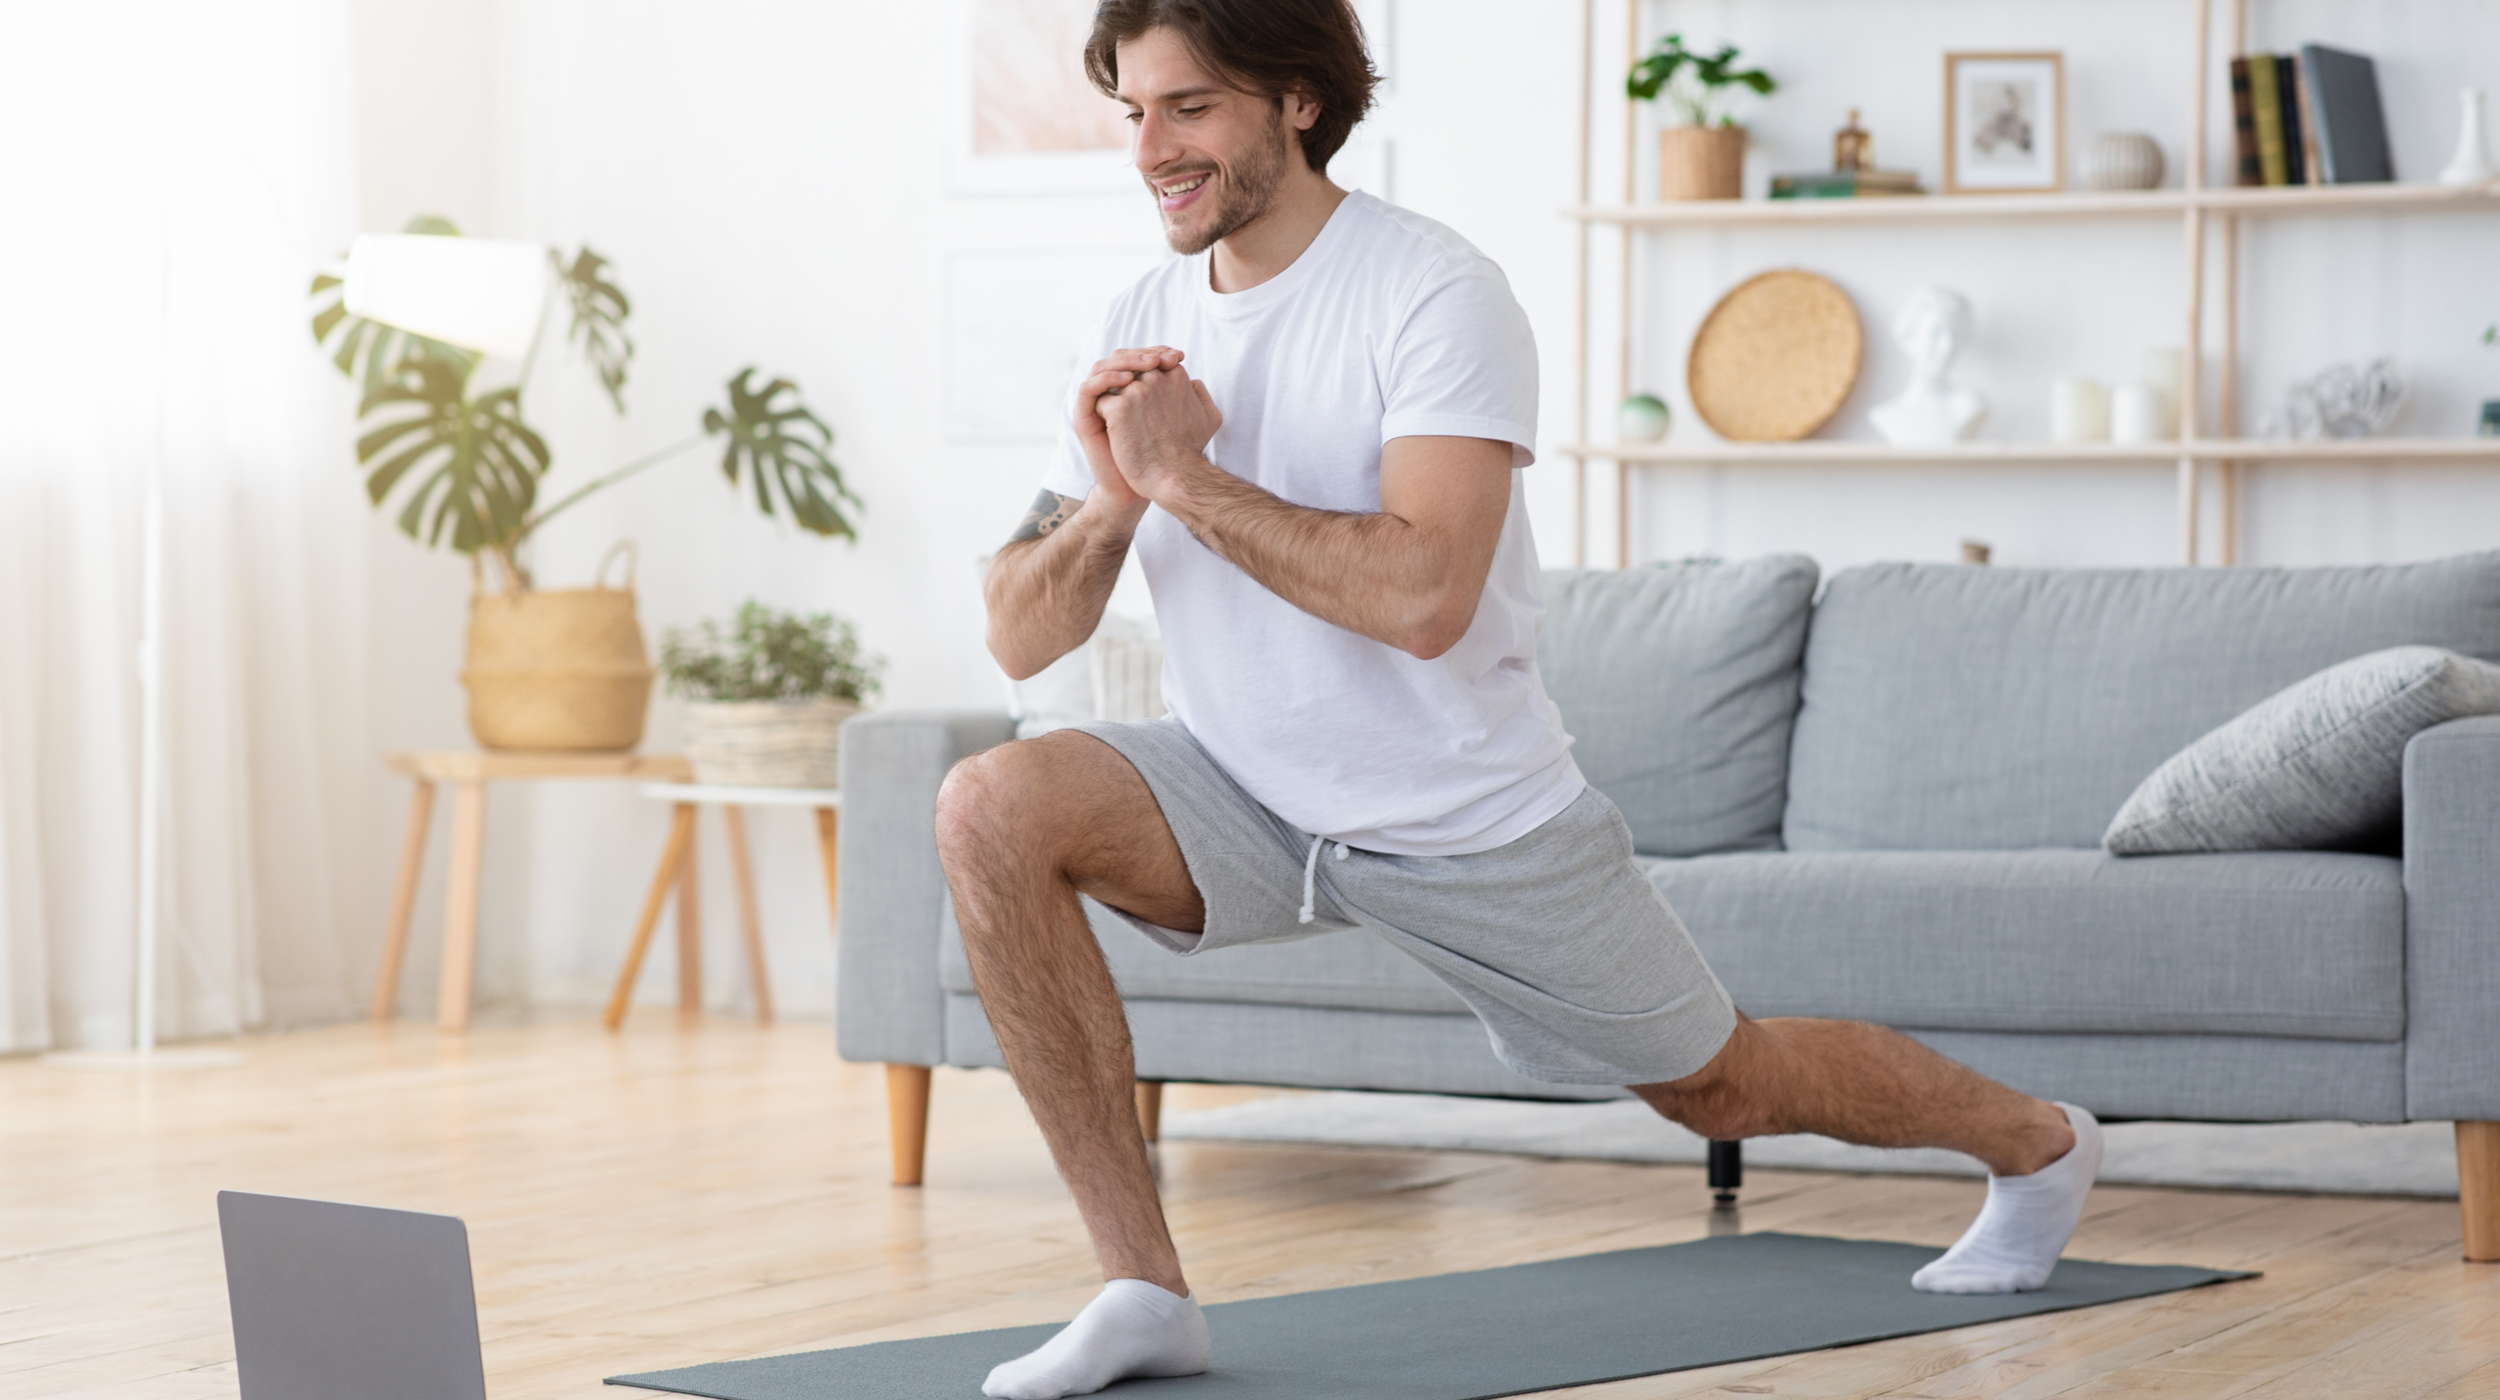 Can You Put on Muscle by Working Out at Home?